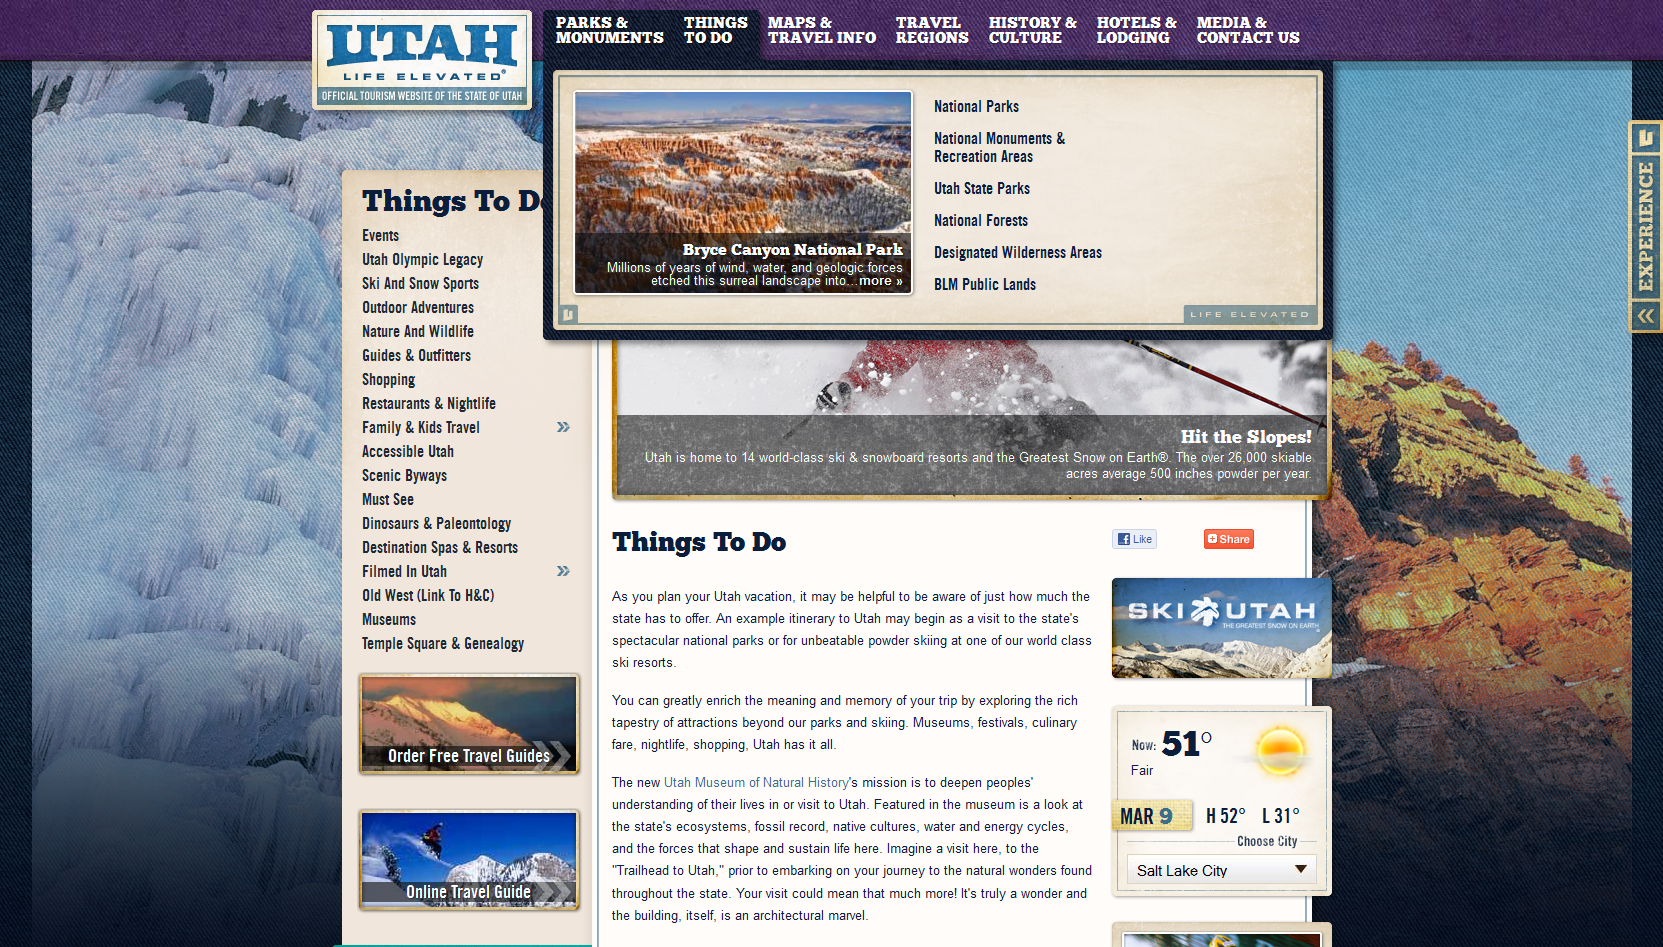 Utah Tourism Website - March 2012 - Winter Imagery